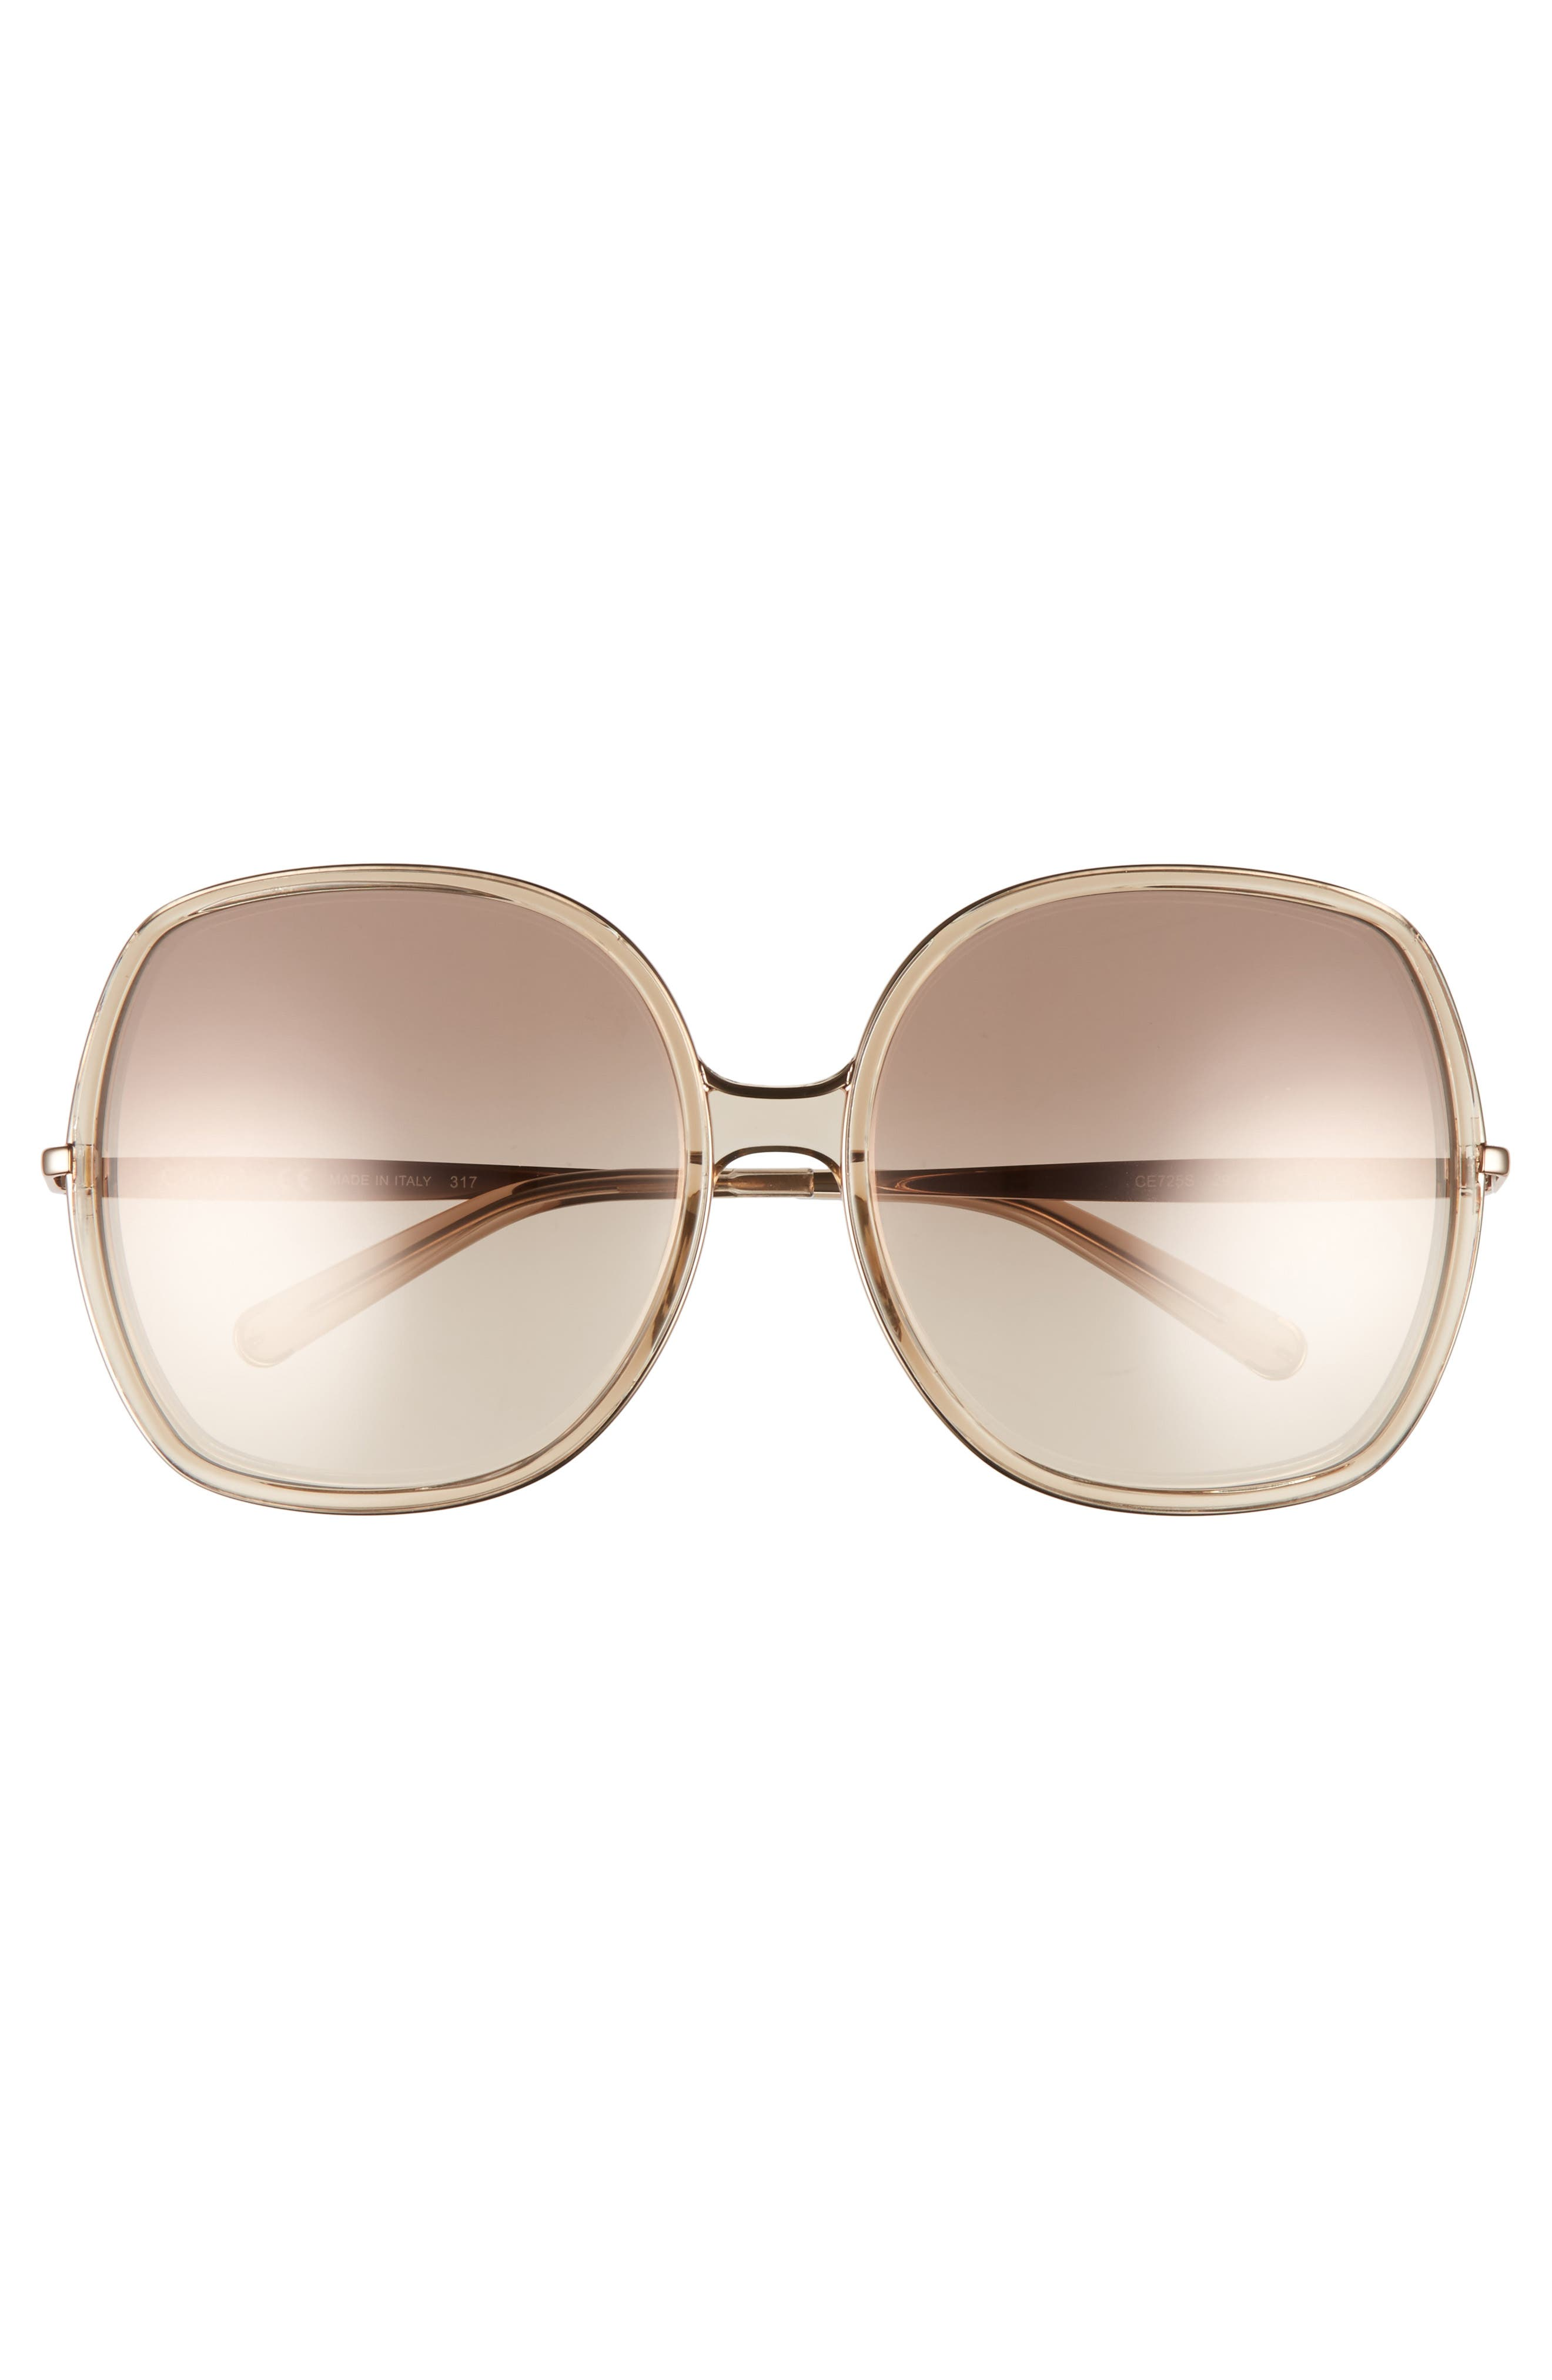 62mm Oversized Gradient Lens Square Sunglasses,                             Alternate thumbnail 3, color,                             NUDE